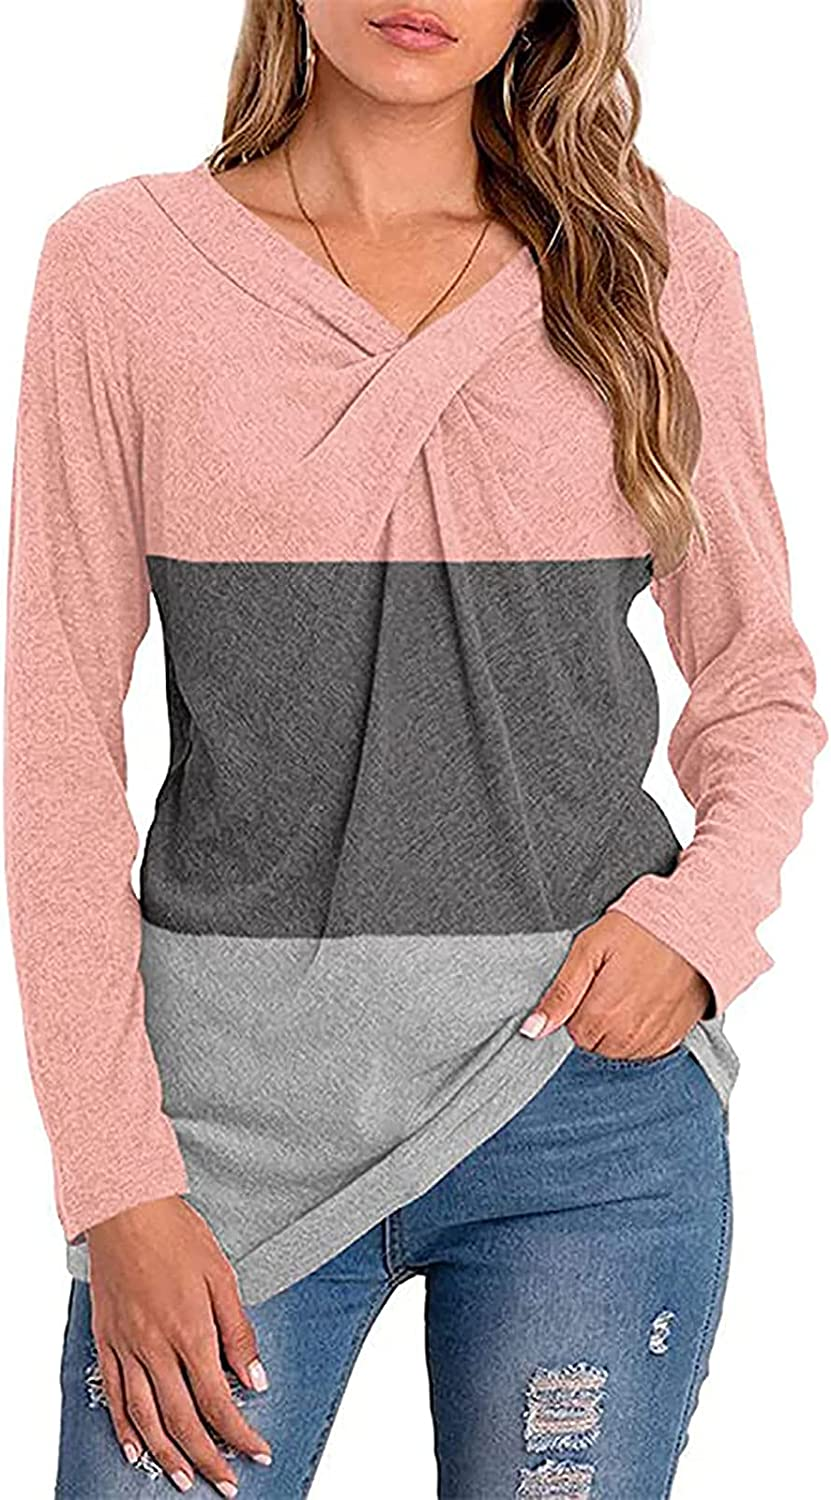 Women's V Neck T Shirts Loose Fit Long Sleeve Color Matching Casual Tops Blouse Tunic Tops Tees